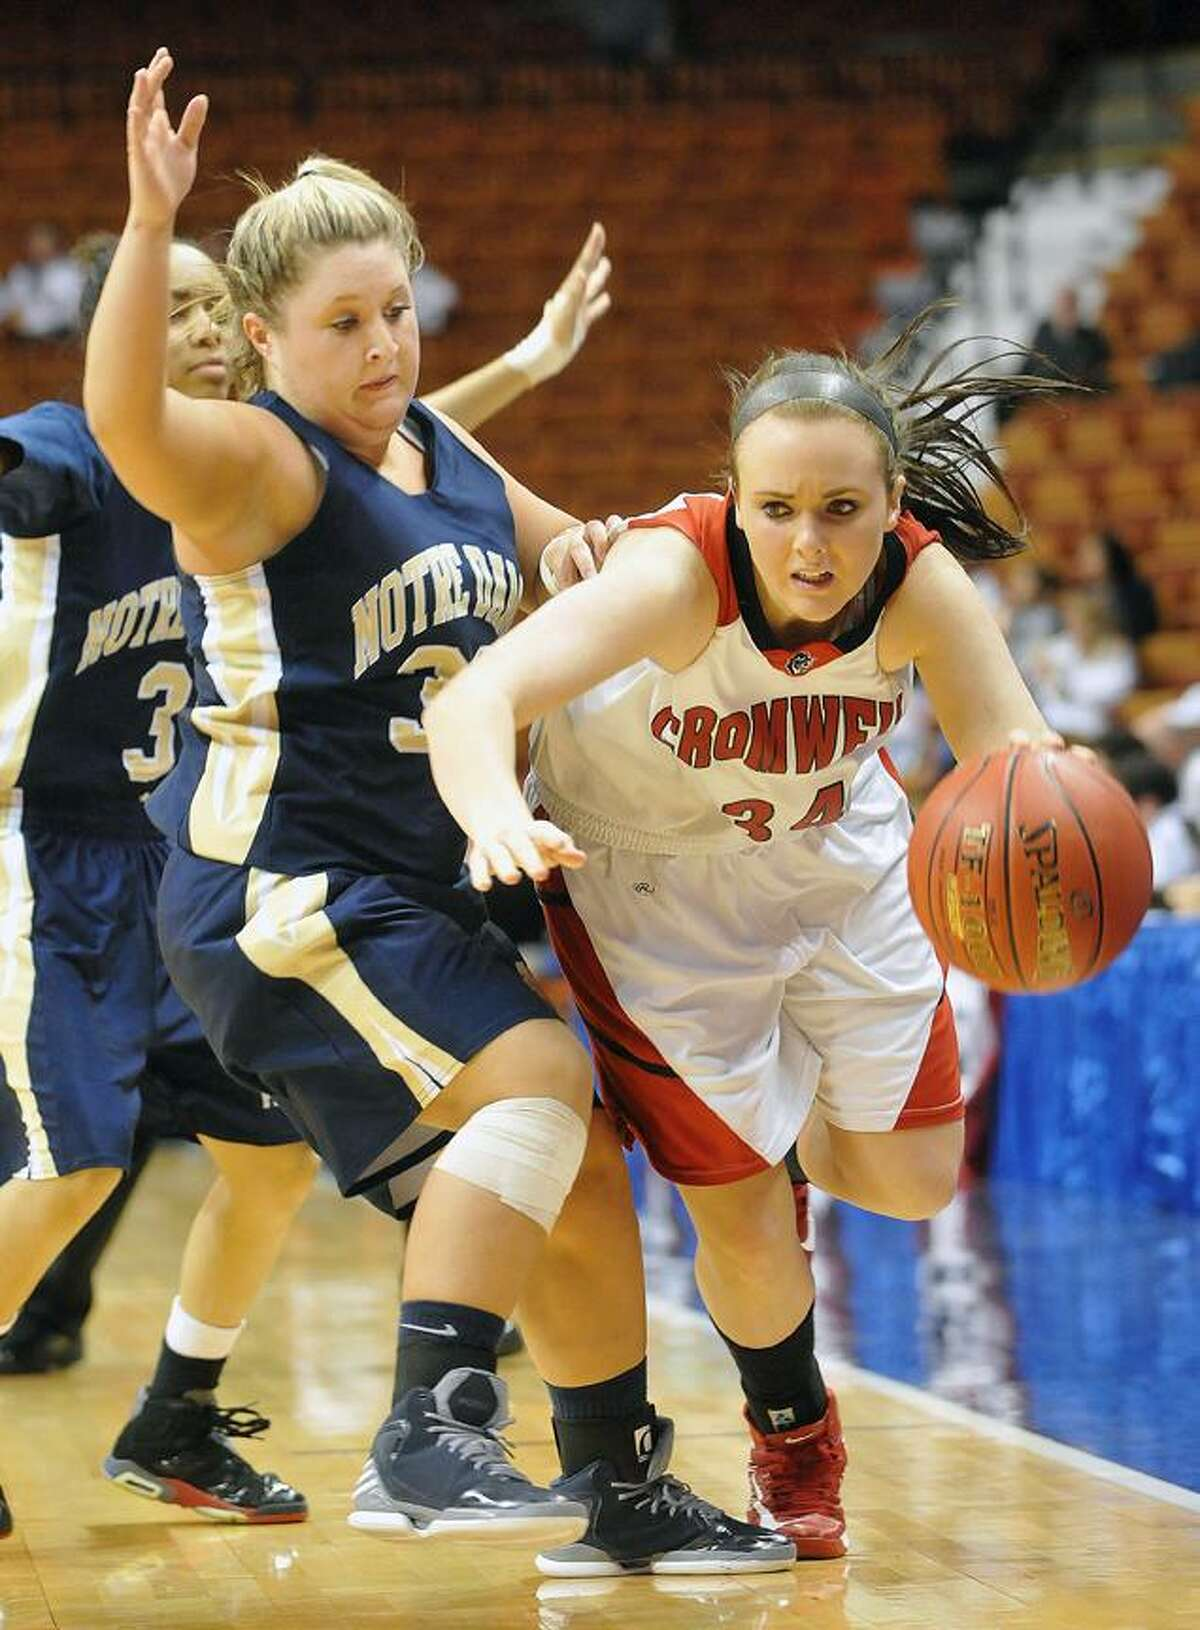 Catherine Avalone/The Middletown Press Cromwell senior Kelly Flanigan drives past Notre Dame senior McKenzie Stone at Mohegan Sun Friday night. Cromwell defeated Notre Dame-Fairfield 42-28 for the Class M Championship title.